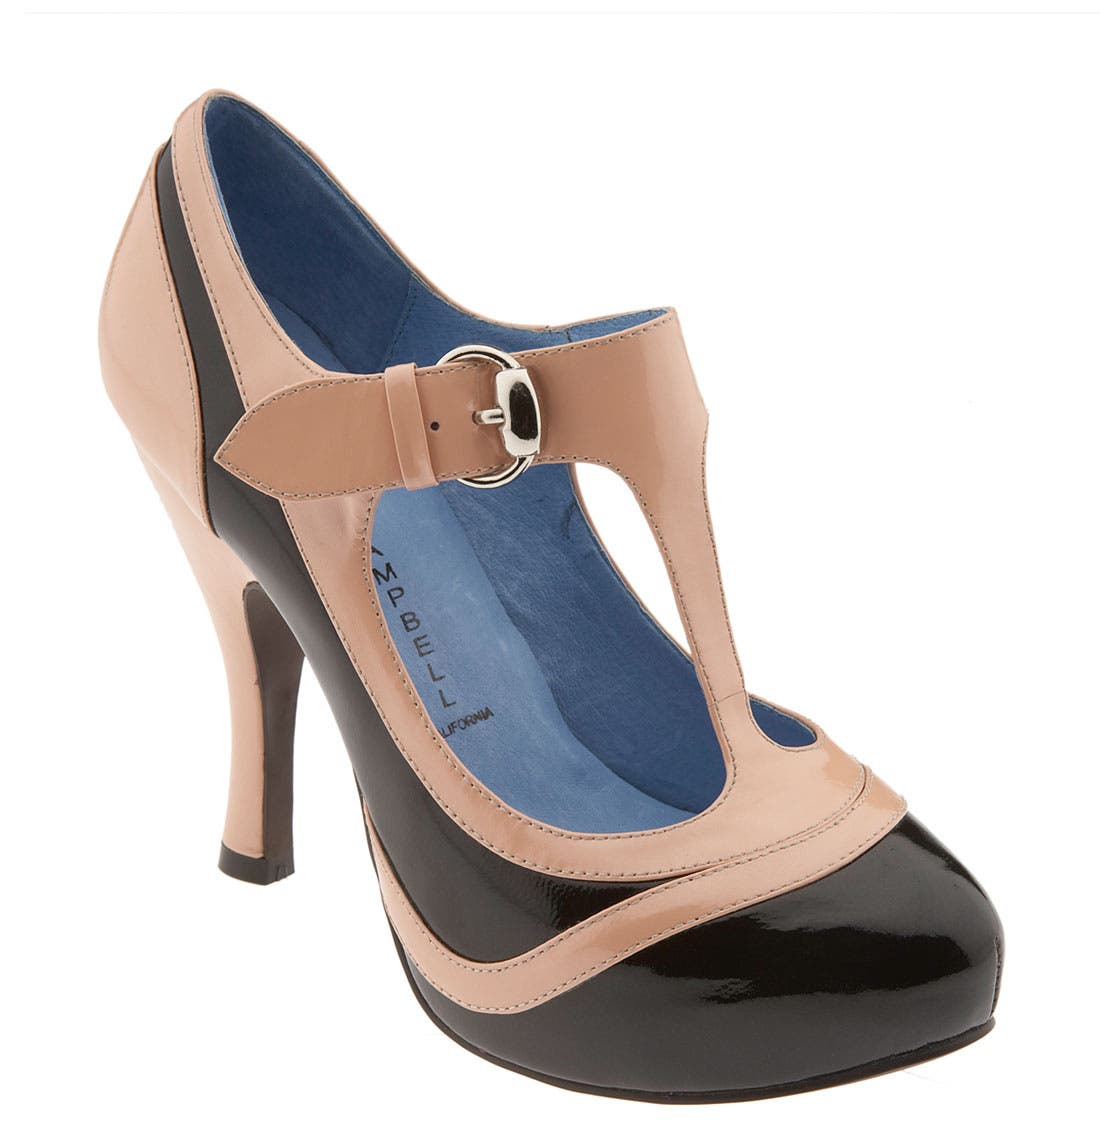 Alternate Image 1 Selected - Jeffrey Campbell 'Like 2' Pump